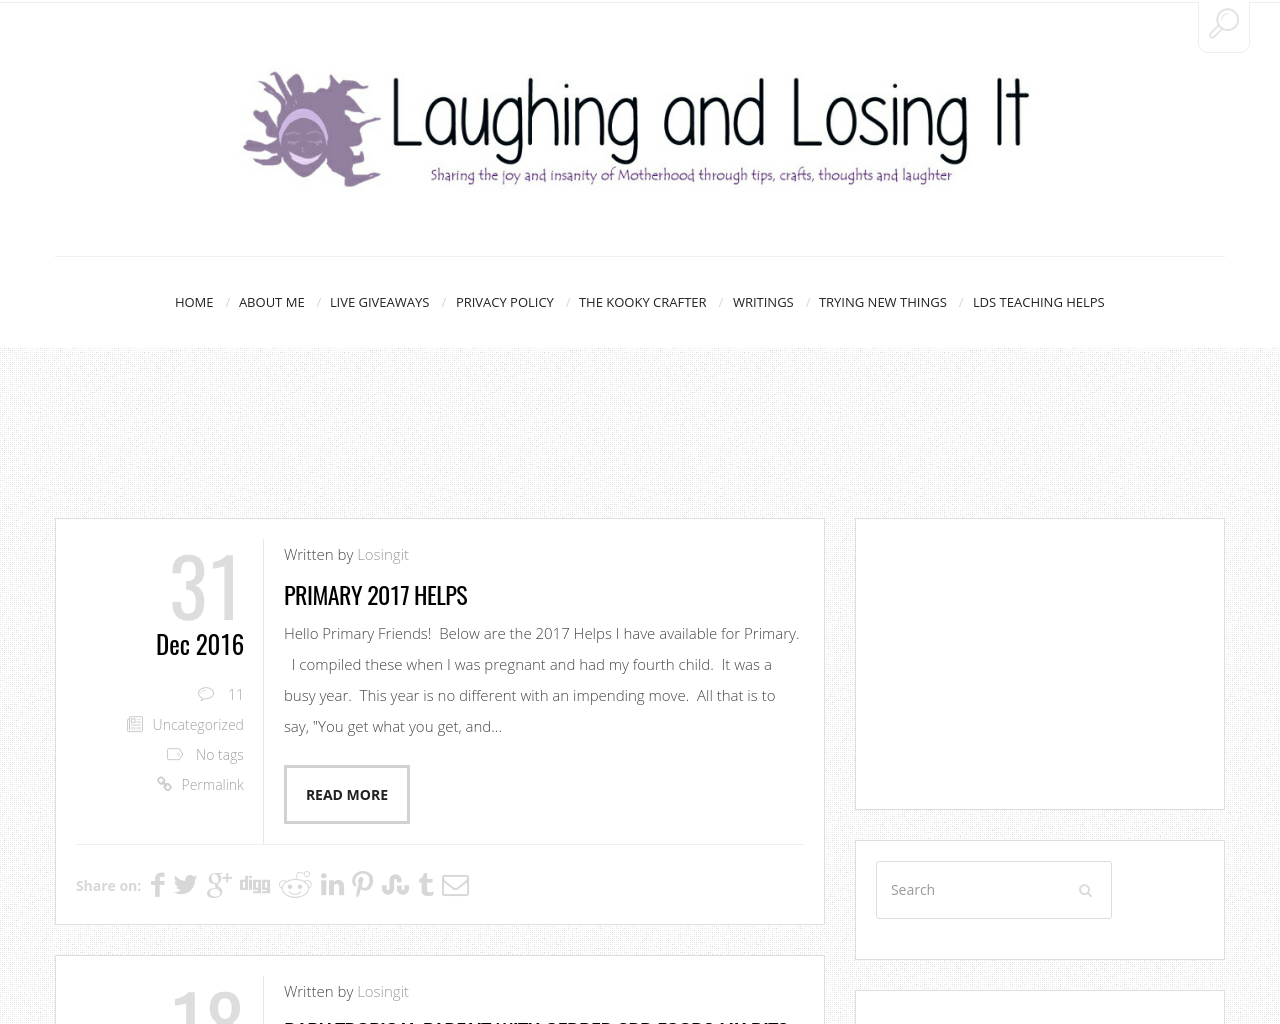 Laughing-And-Losing-It-Advertising-Reviews-Pricing